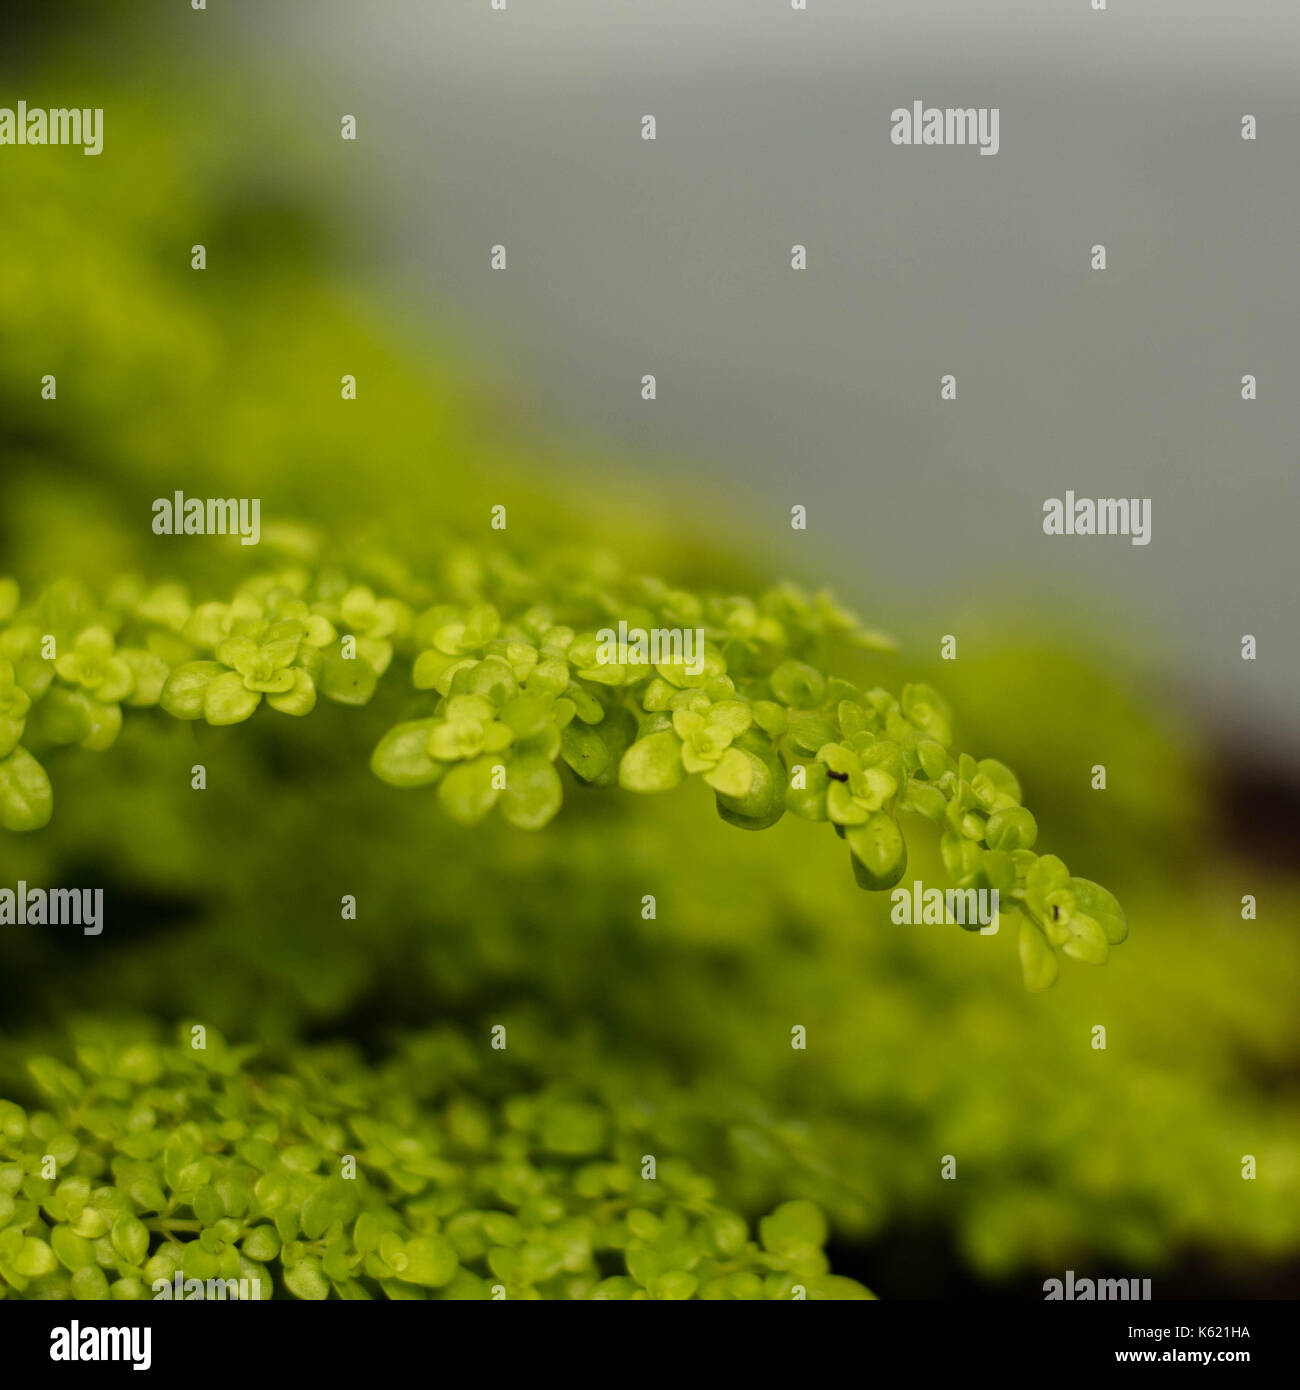 Small green leaves - Stock Image